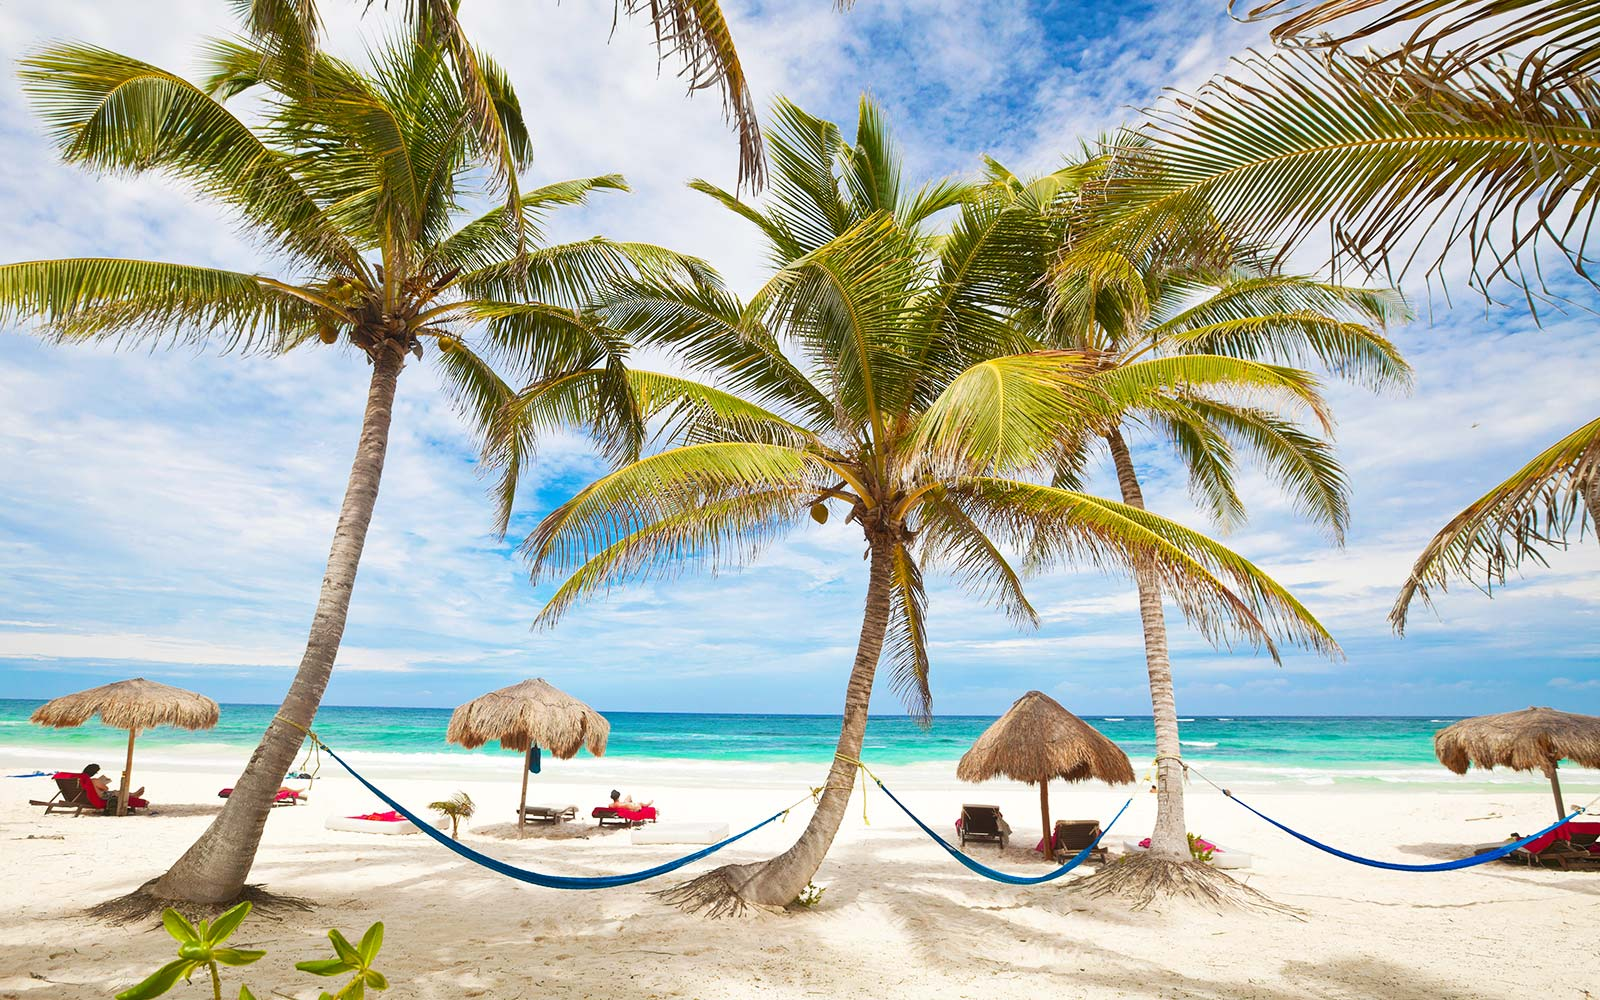 Tropical beach vacation destination with hammocks, beach chairs, and palm trees in Tulum, Mexico Cara Delevingne Birthday